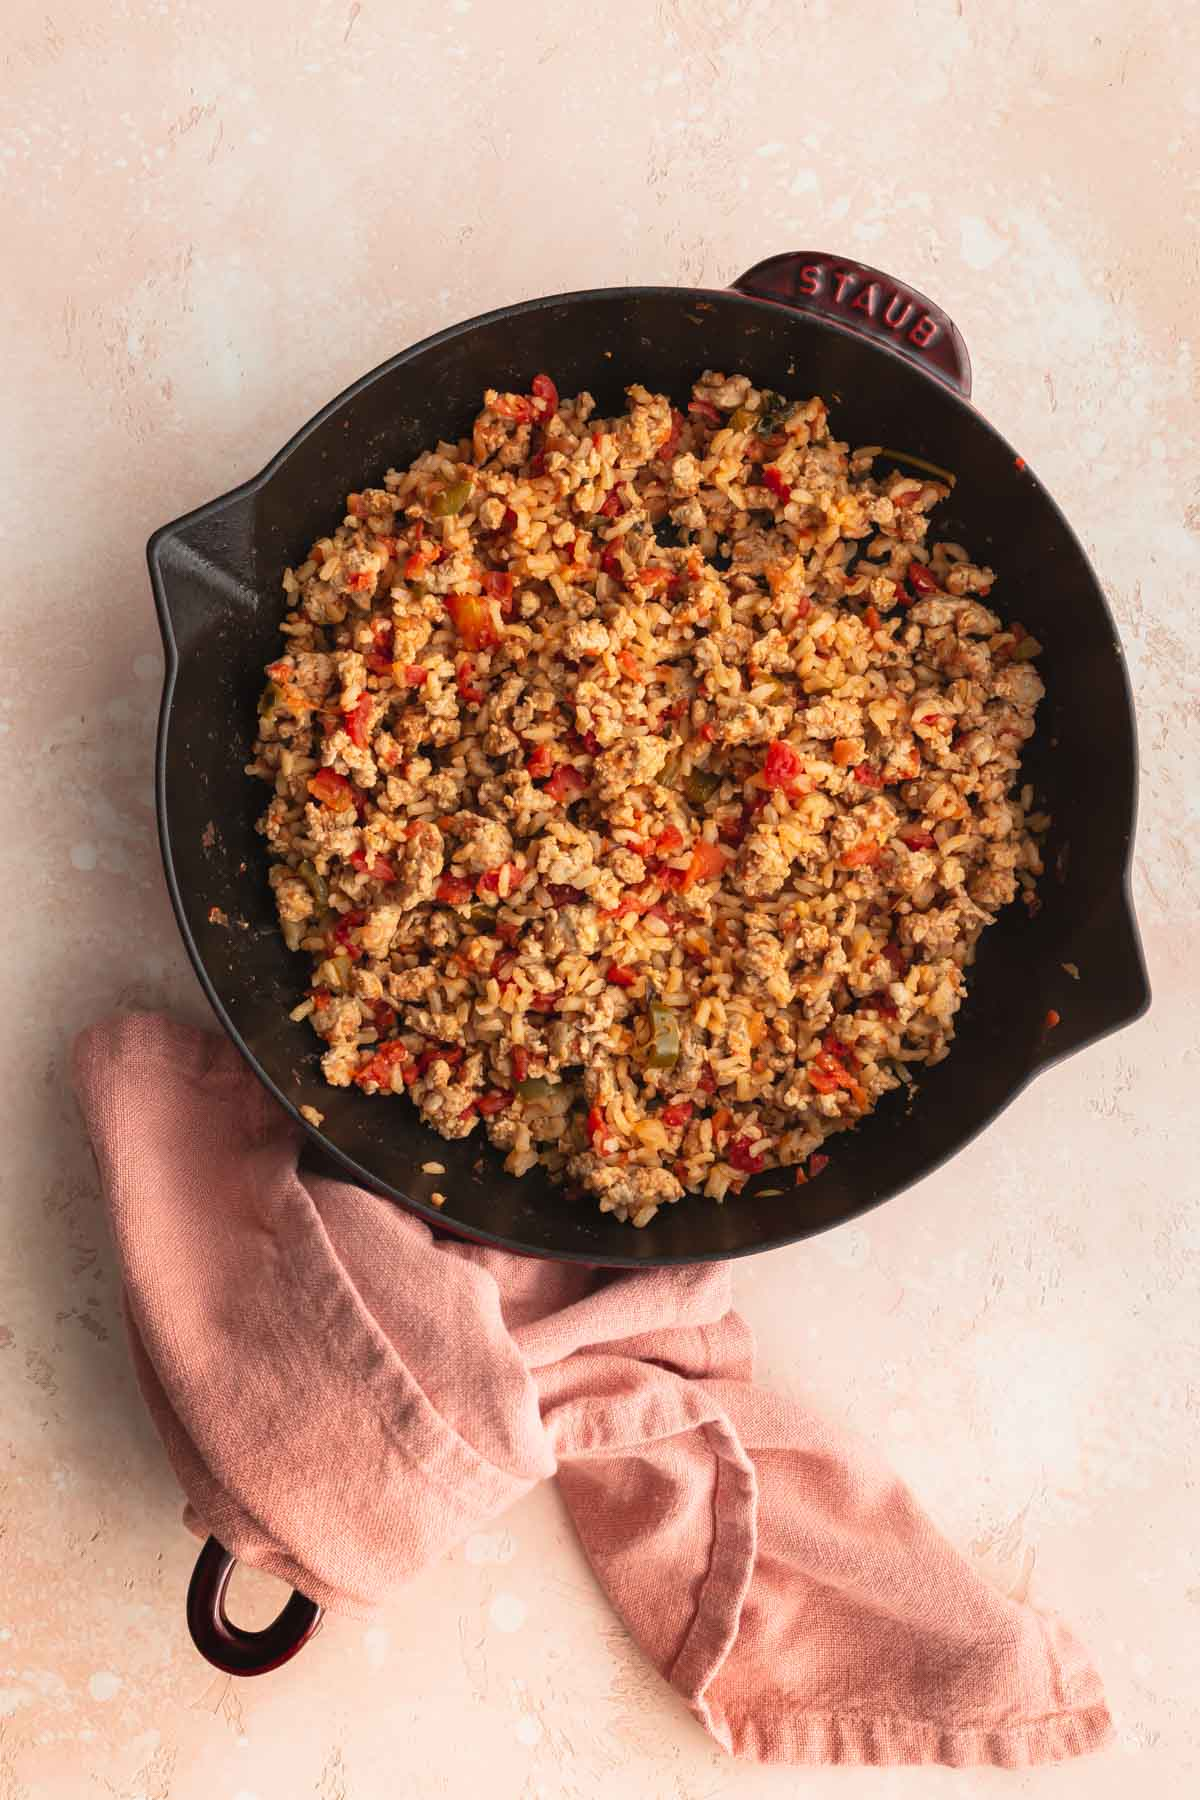 Turkey mixture for the stuffed peppers in a cast iron skillet.